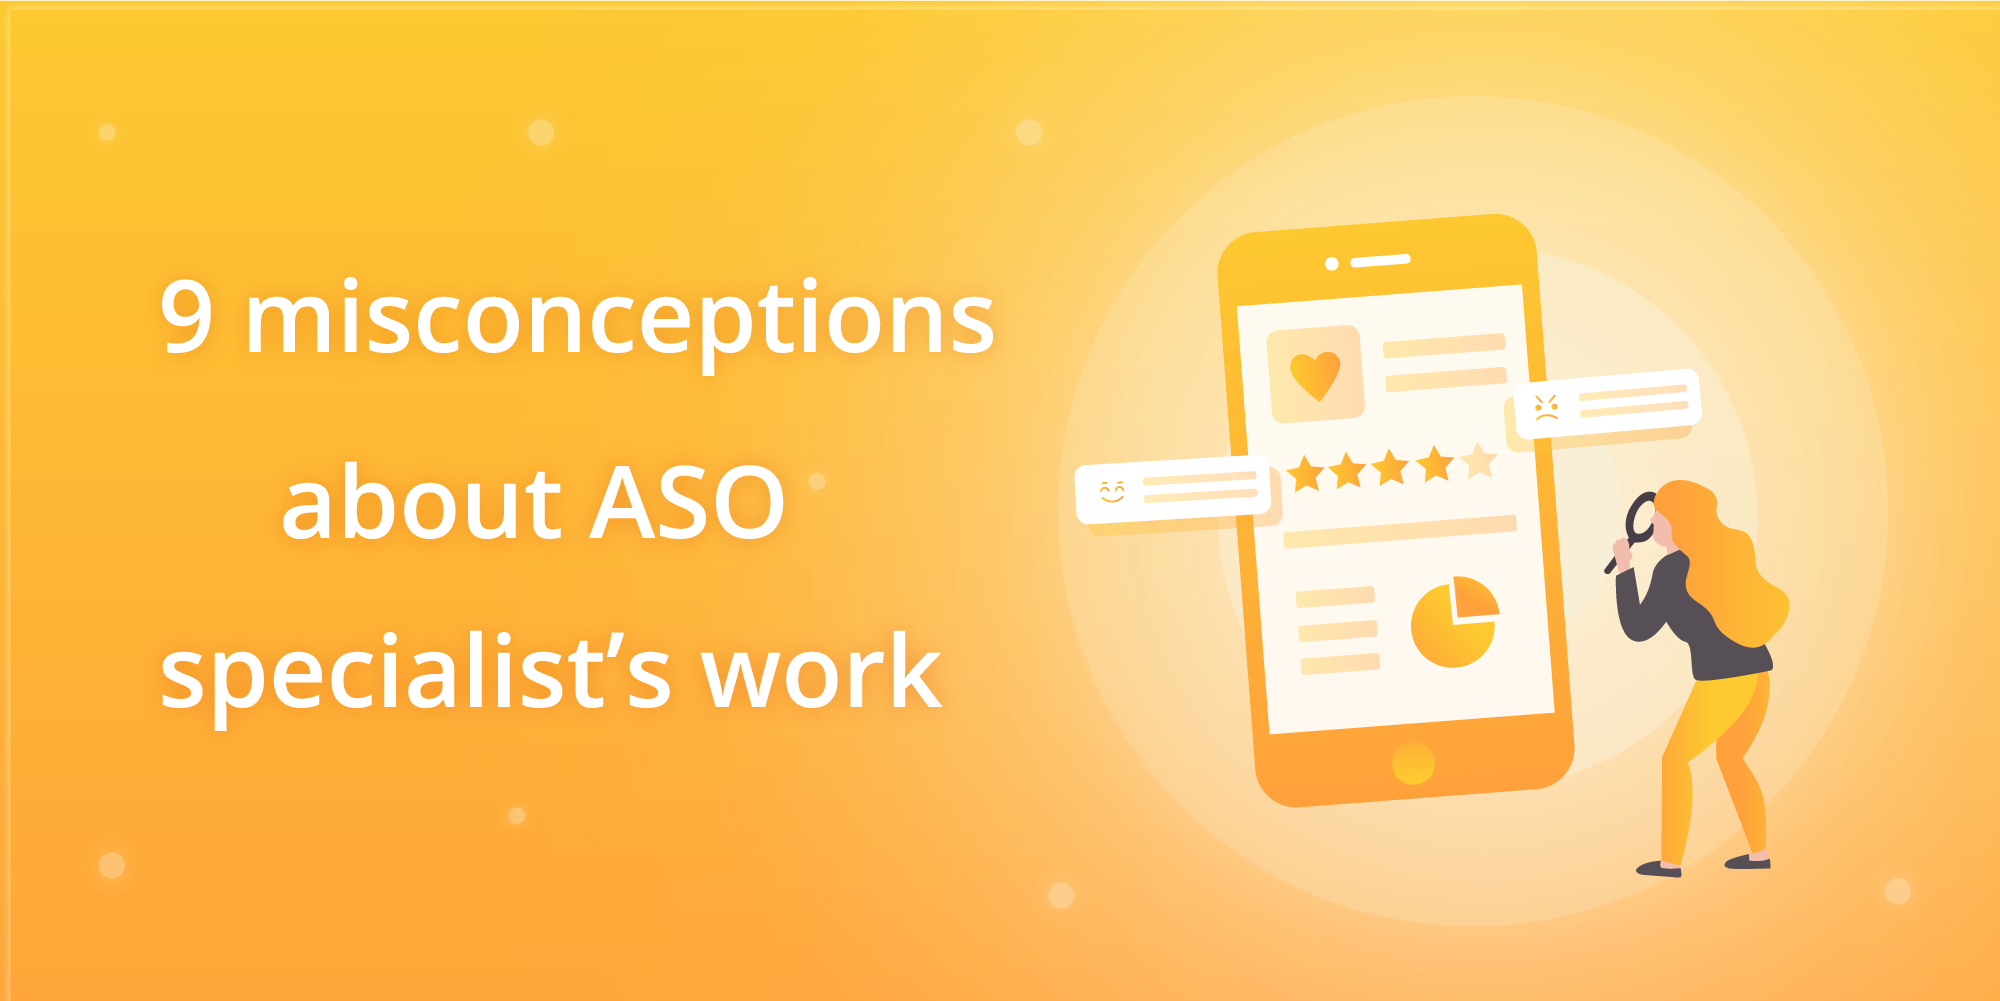 ASO tears: 9 misconceptions about ASO specialist's work